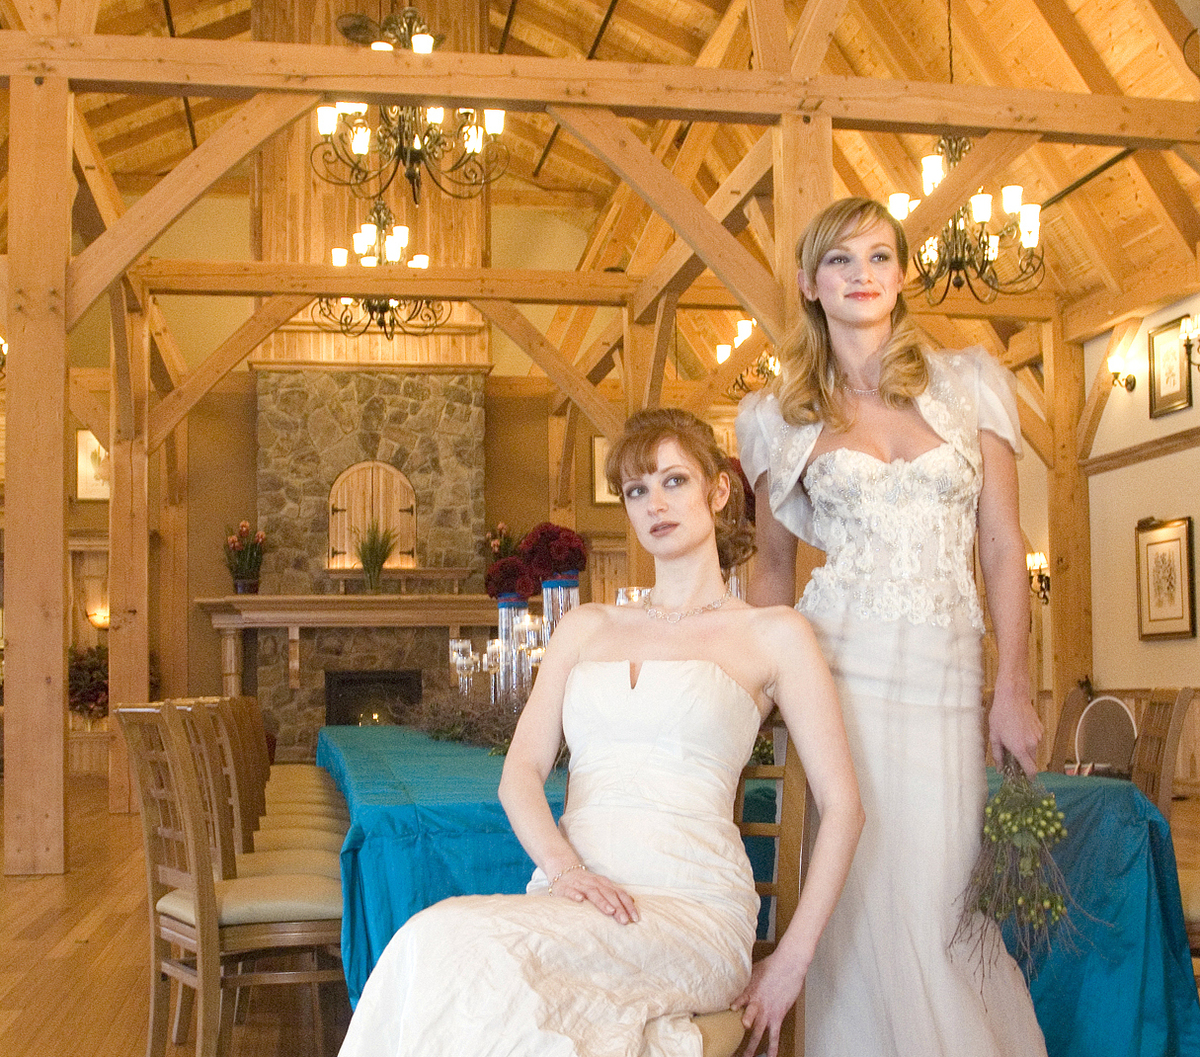 A collaboration between wedding related businesses and models shoot photos in a barn